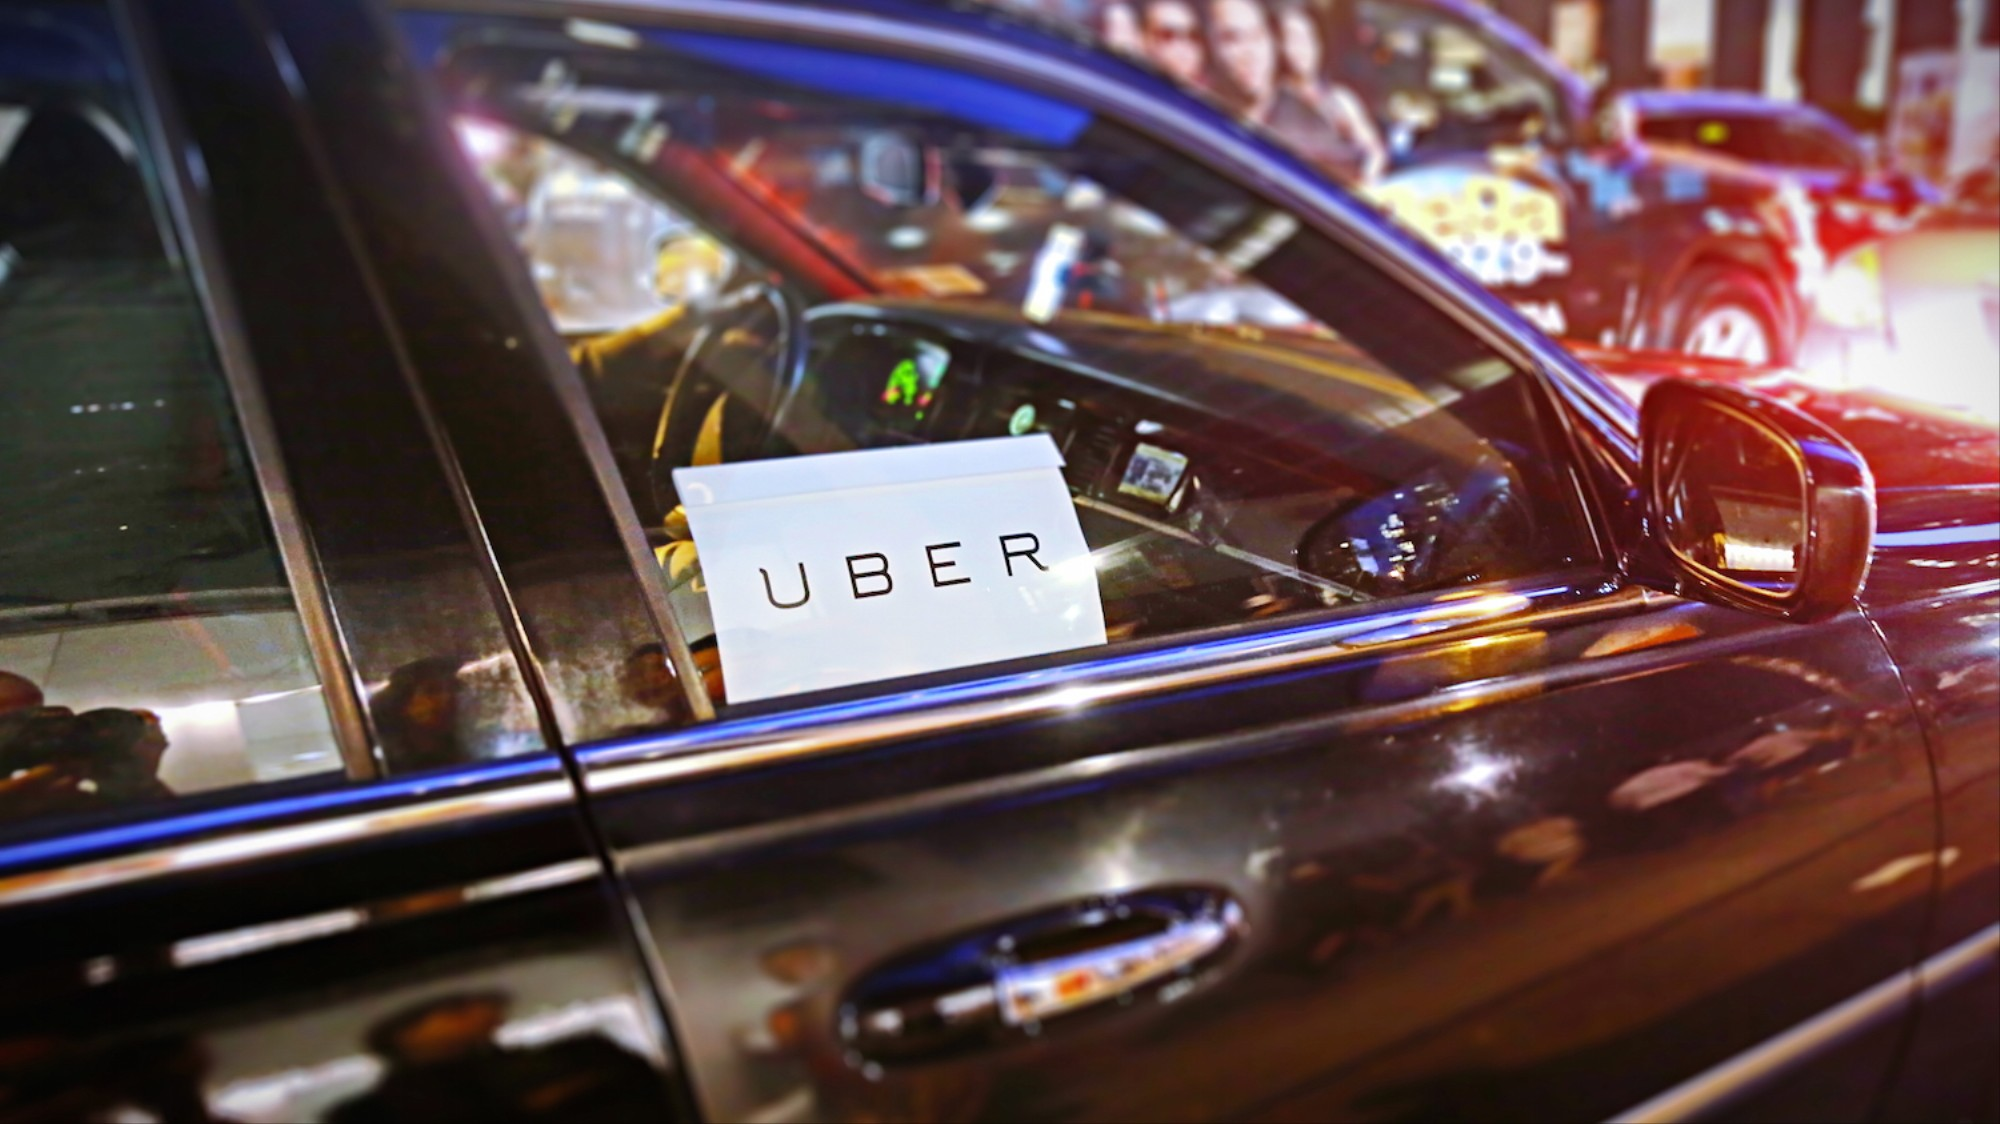 Scammers Say They Got Uber to Pay Them With Fake Rides and